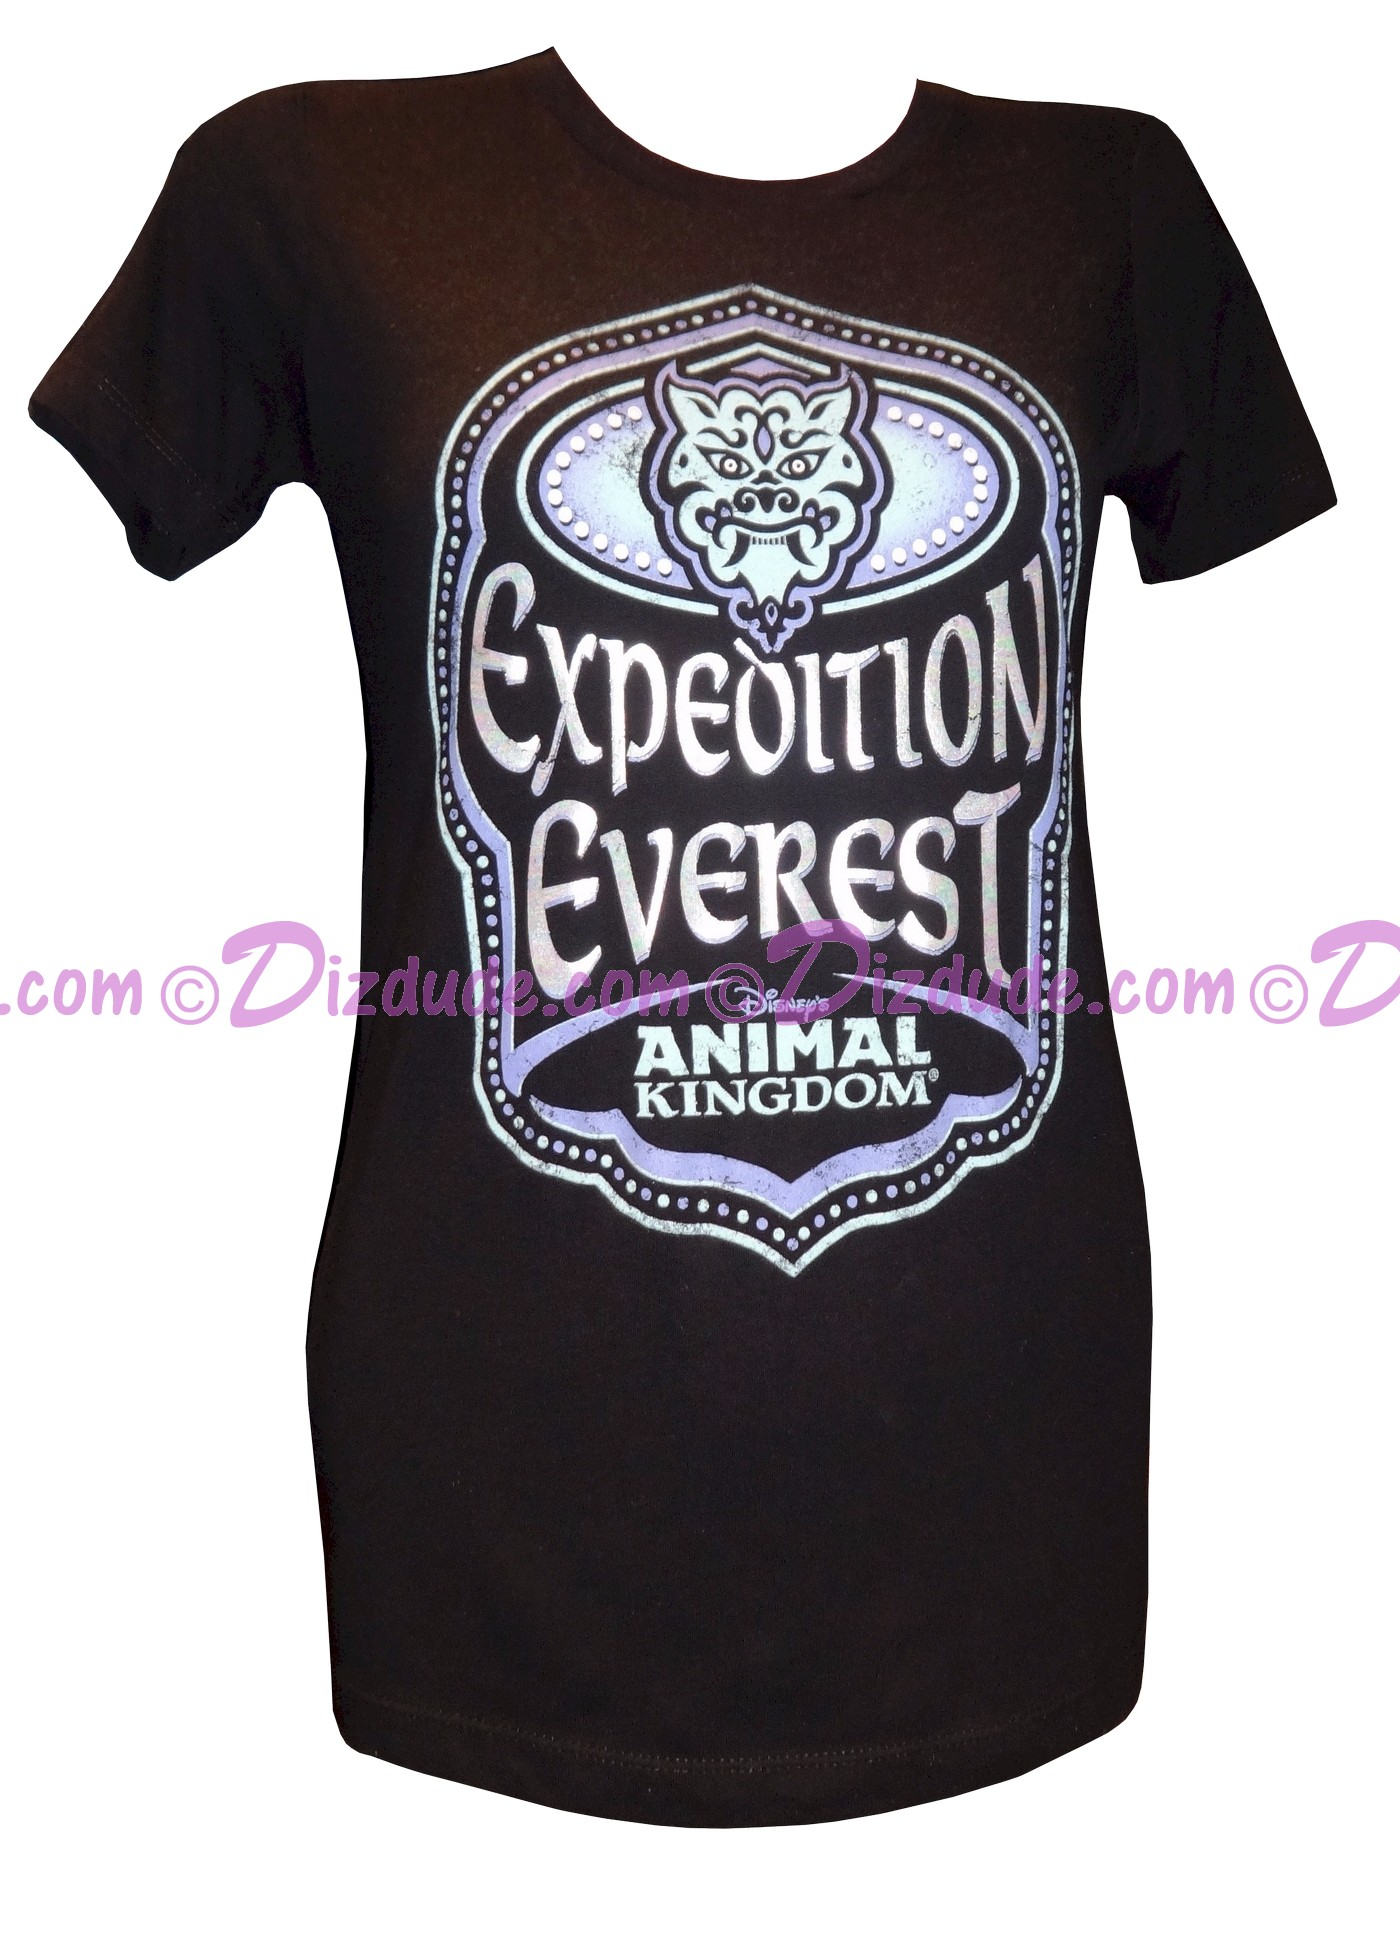 (SOLD OUT) Expedition Everest Ladies T-Shirt (Tee, Tshirt or T shirt) ~ Disney Animal Kingdom